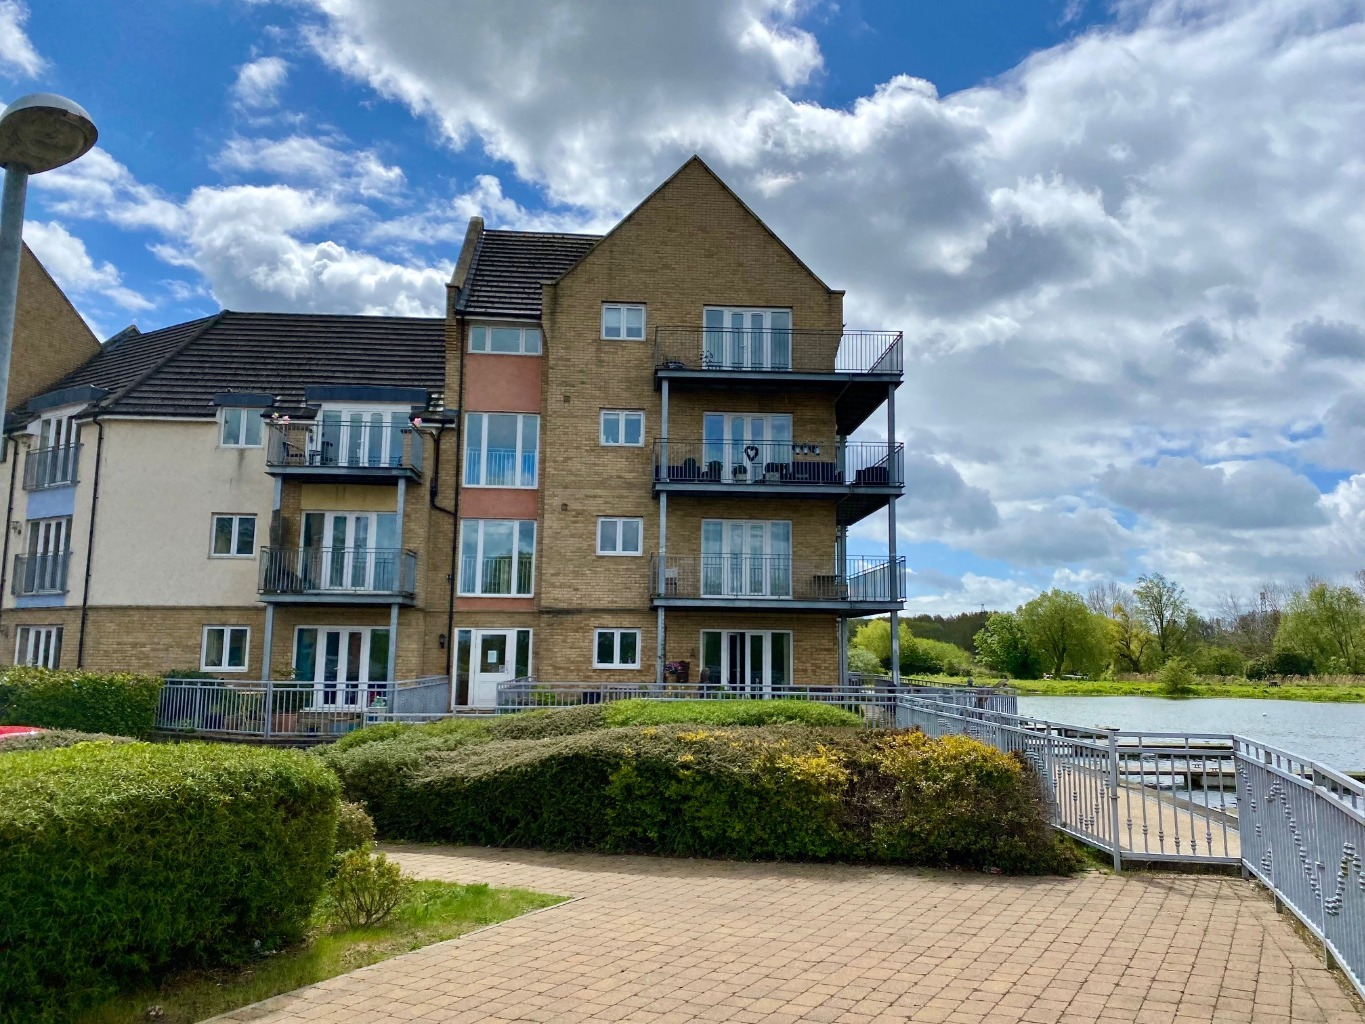 2 bed apartment for sale in Wren Walk, St. Neots - Property Image 1